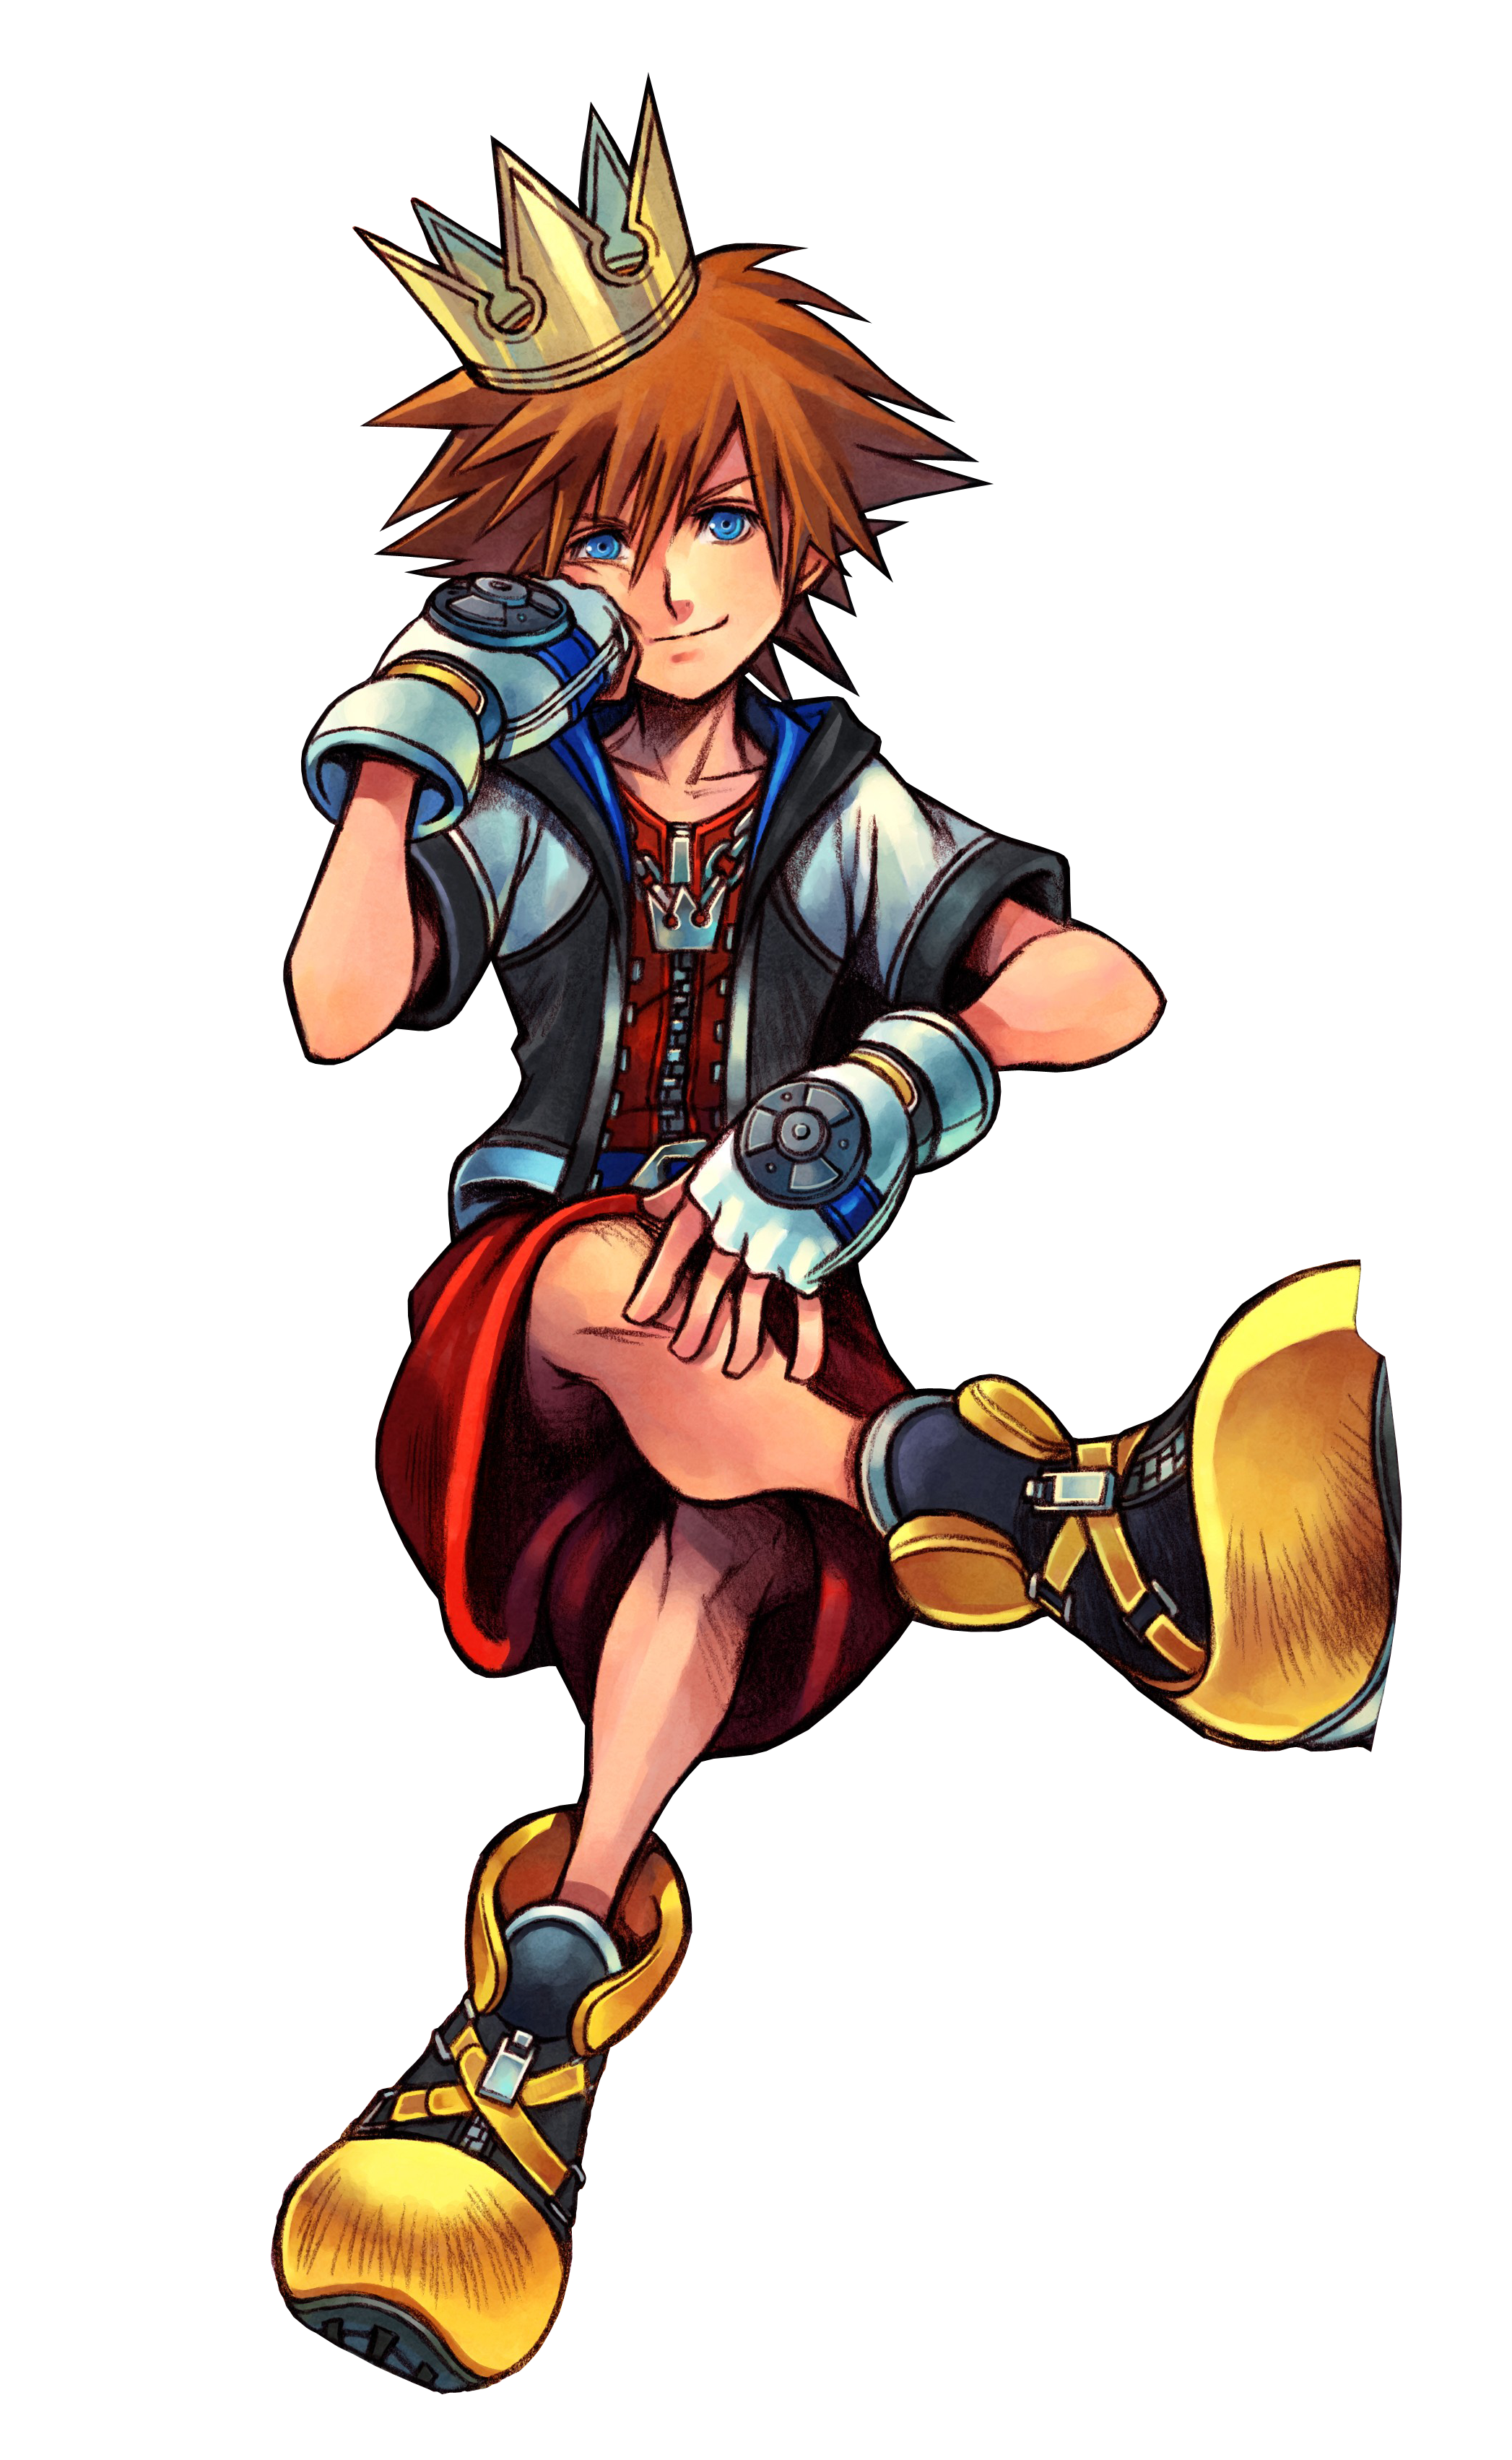 Sora02.png (2094×3406) Sora kingdom hearts, Kingdom